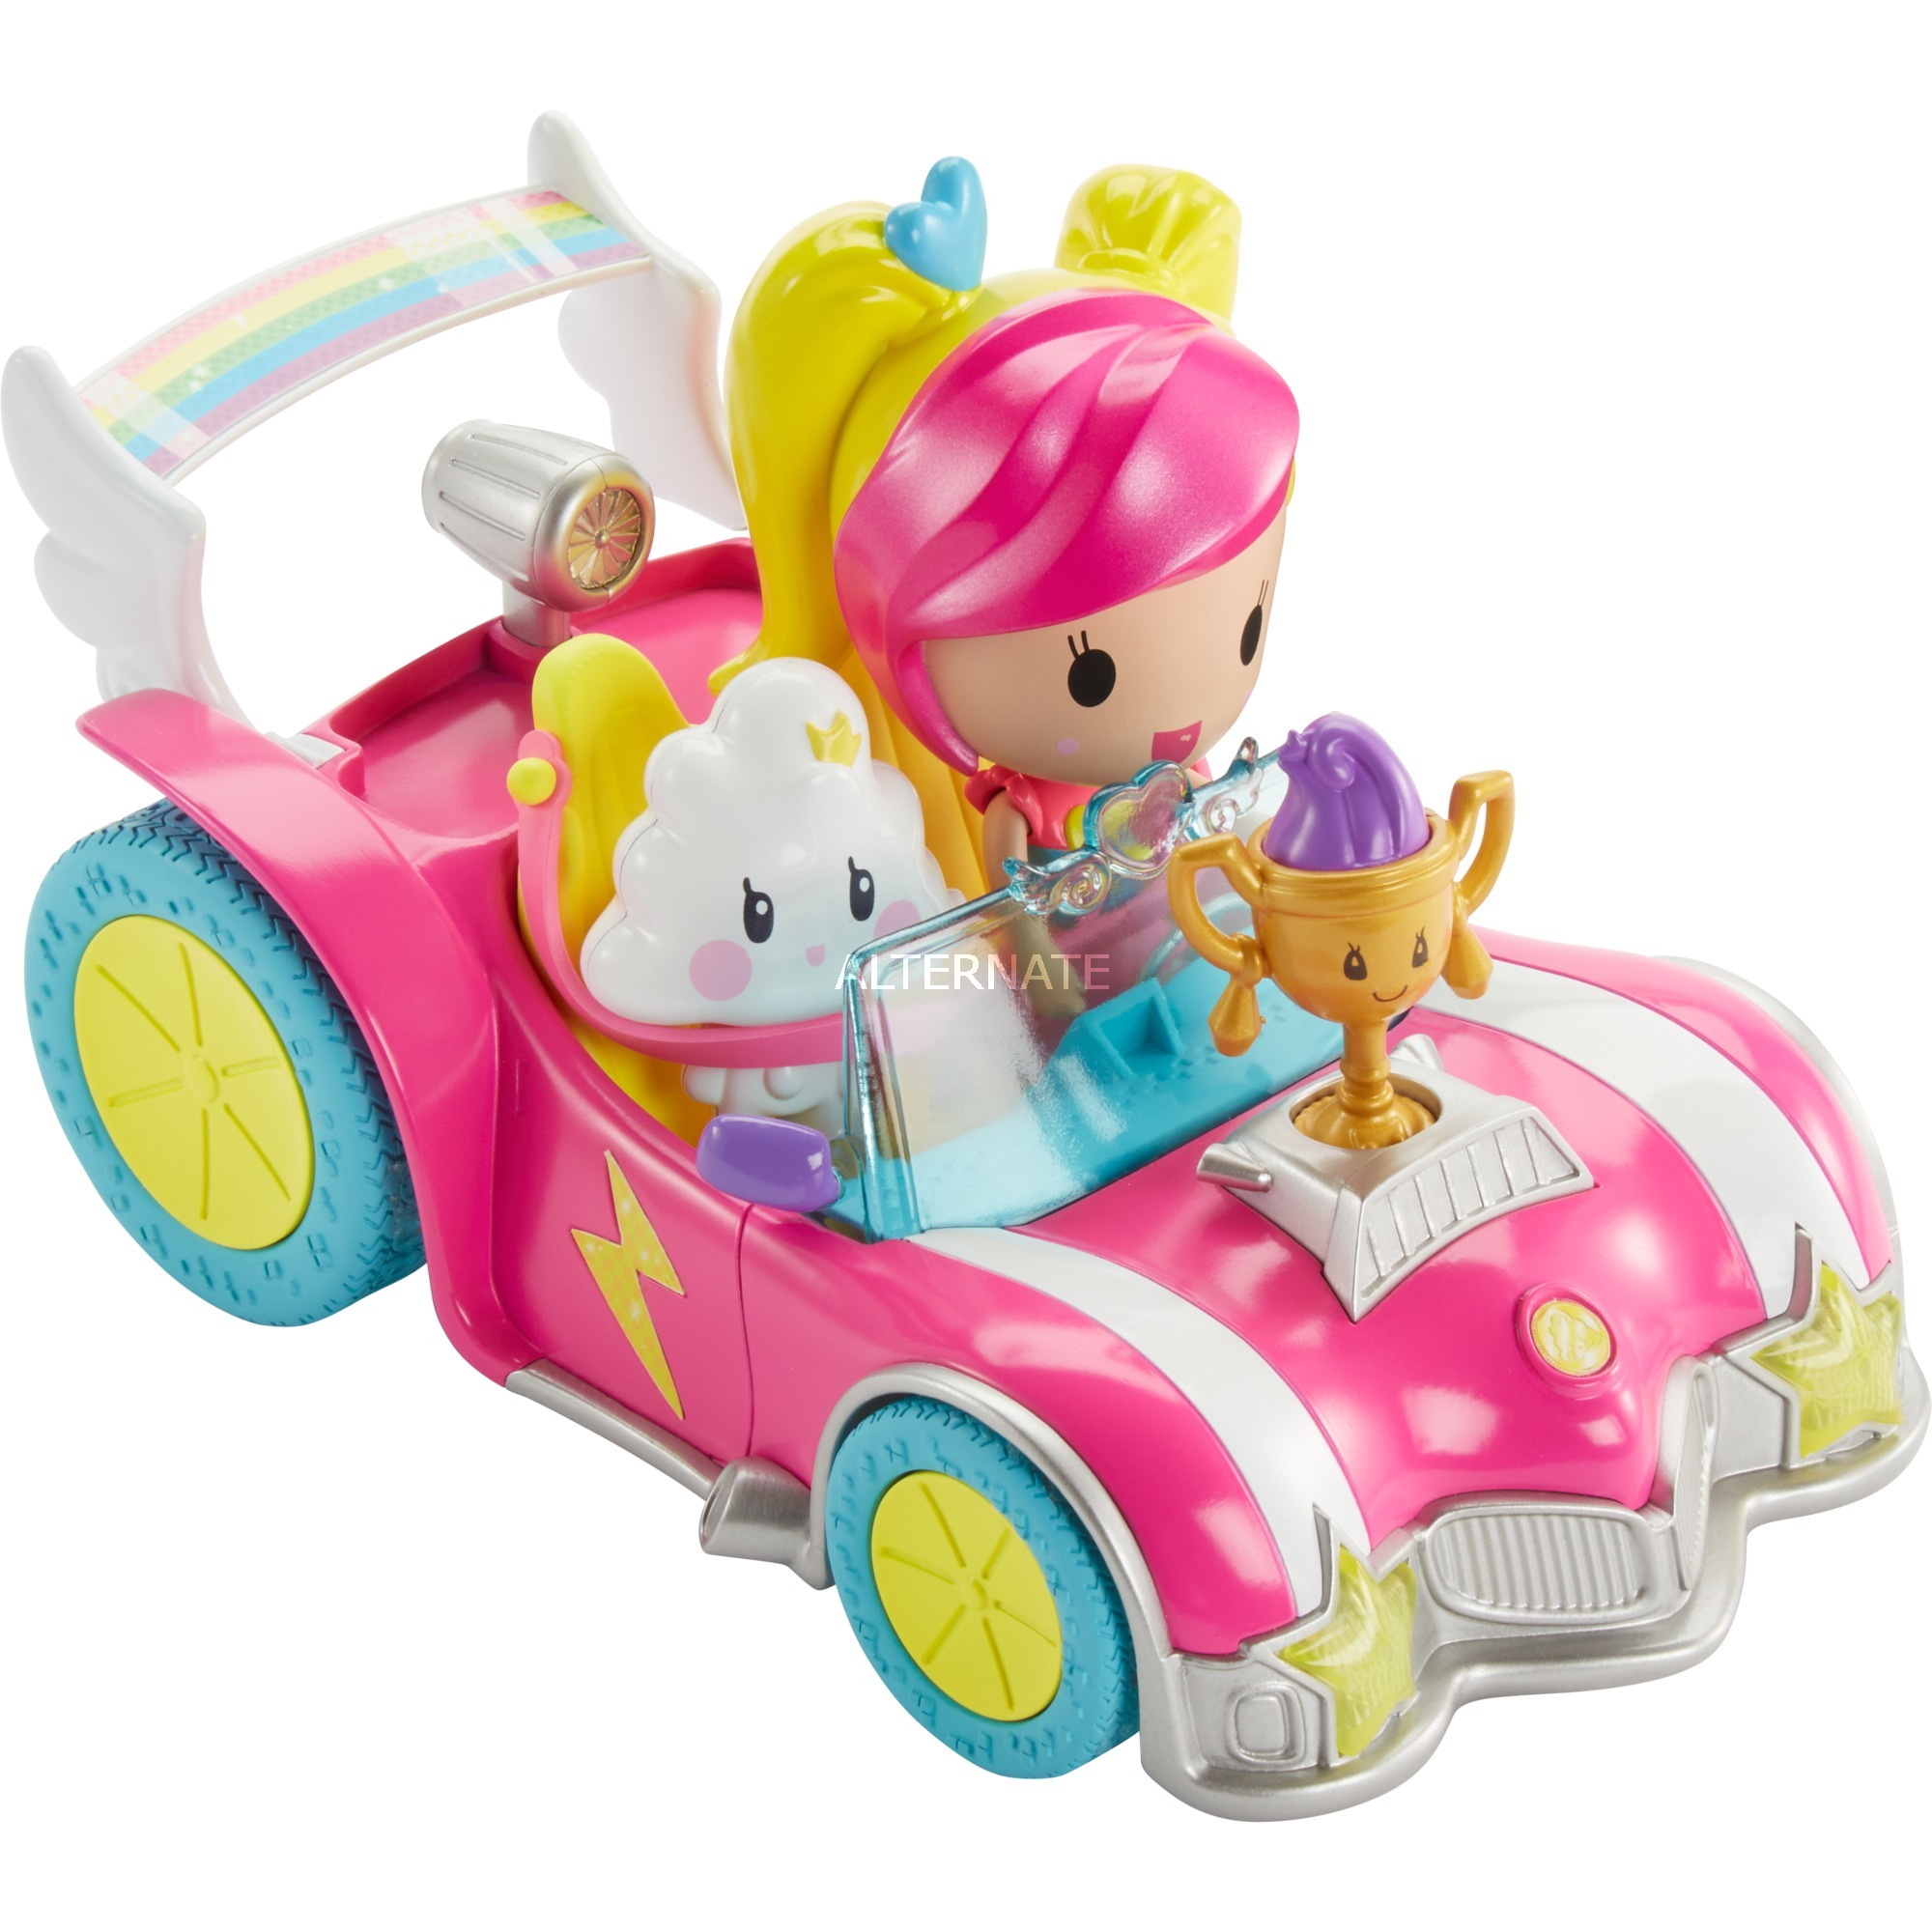 barbie-video-game-hero-vehicle-figure-playset-dukke